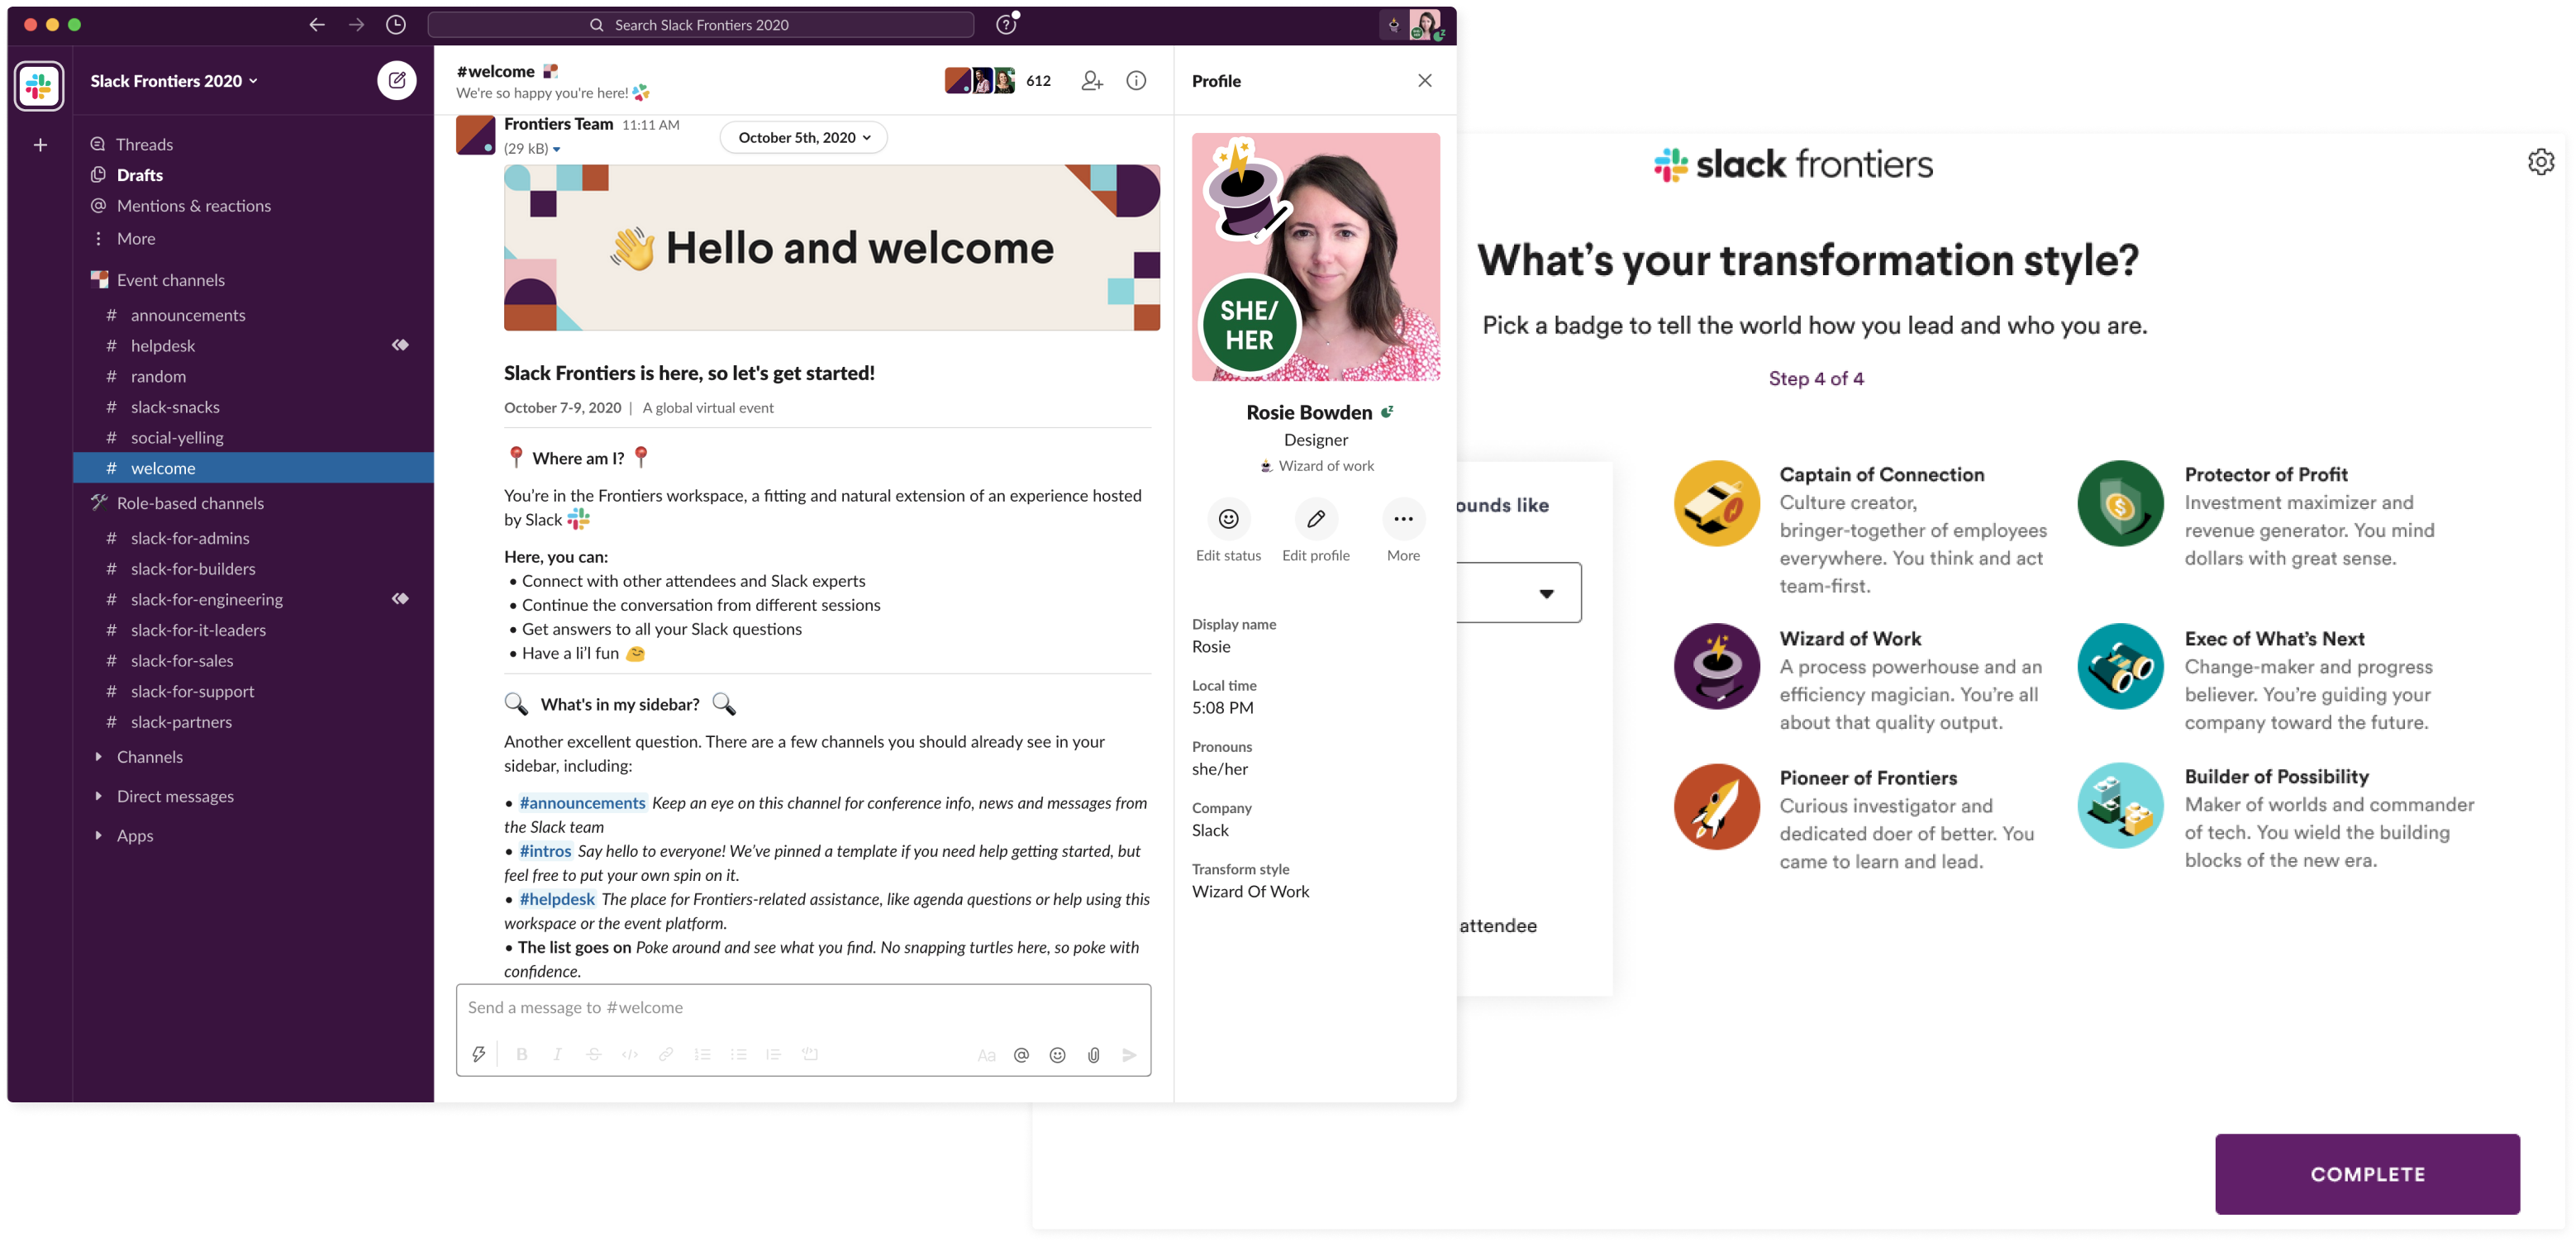 Slack Frontiers workspace with detailed profiles; badges for transformation styles like wizard of work